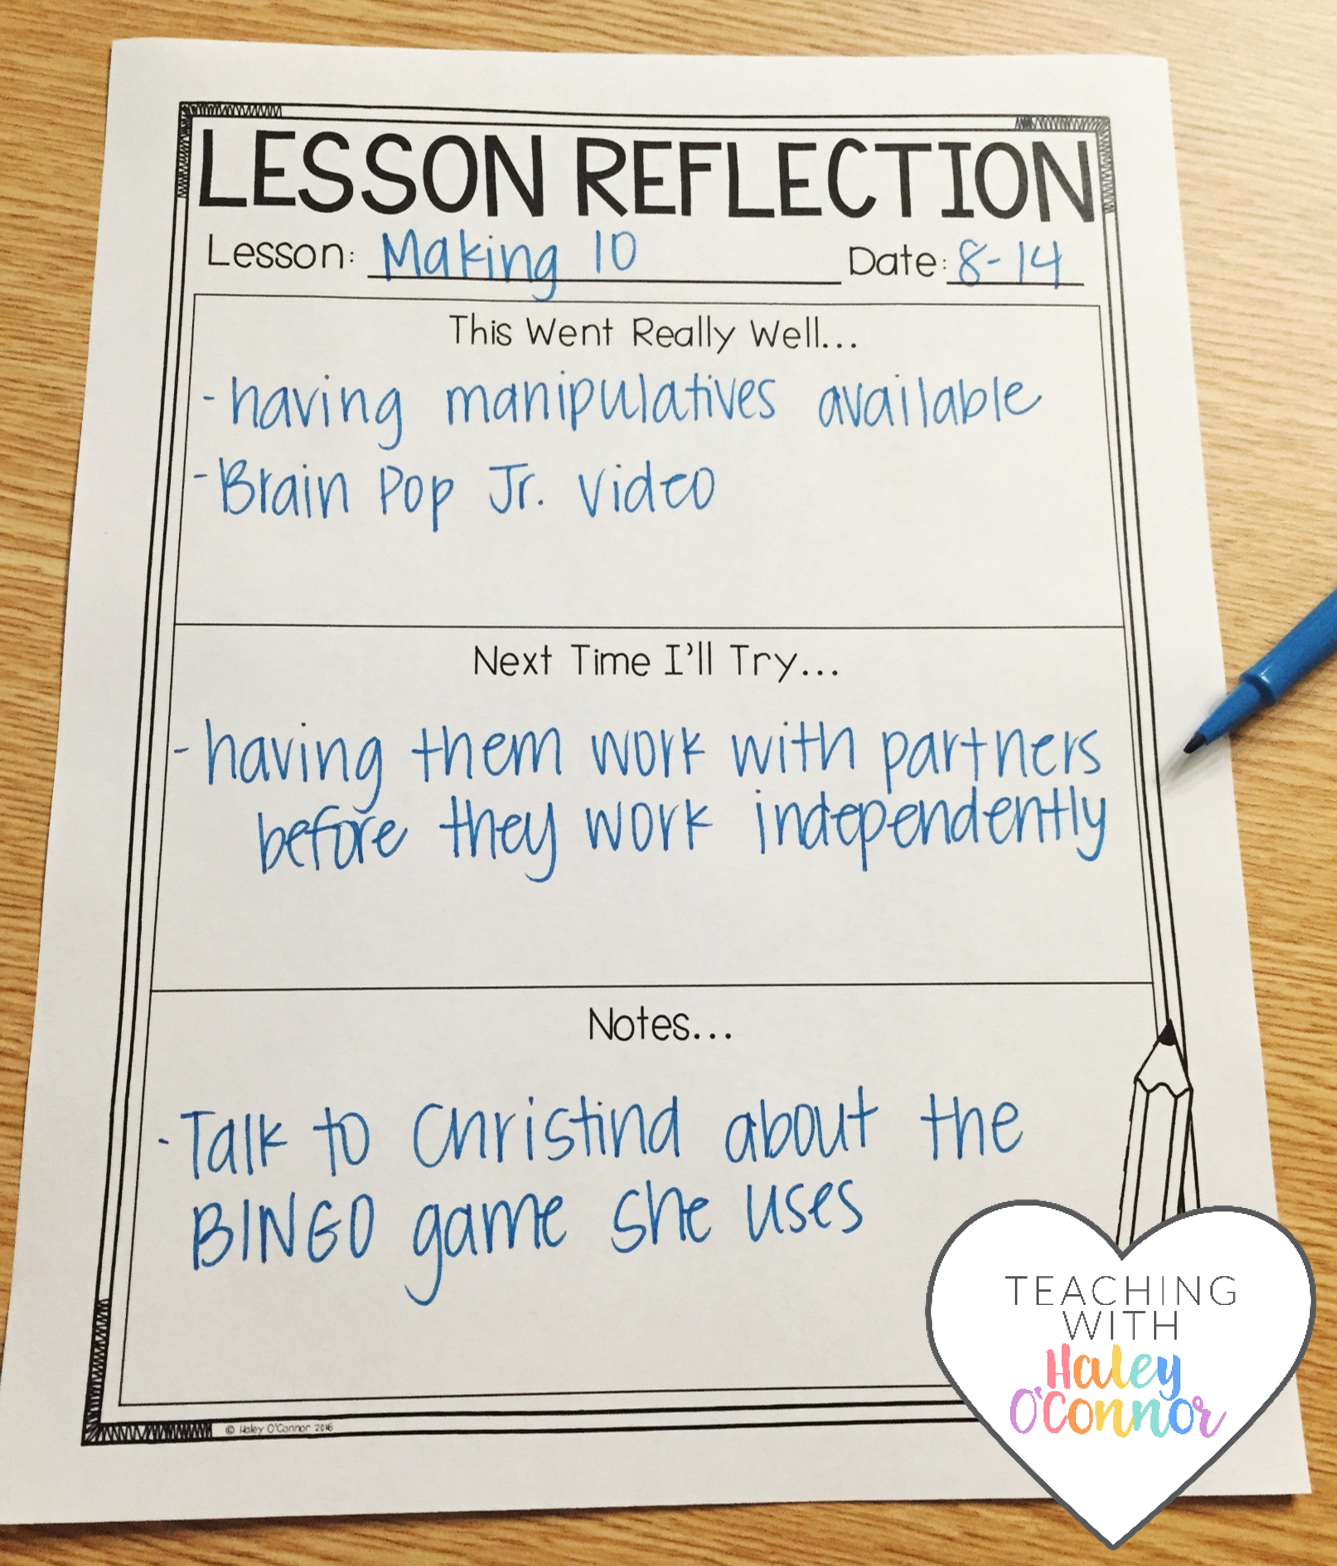 Lesson Reflection Page for Teachers by Haley OConnor